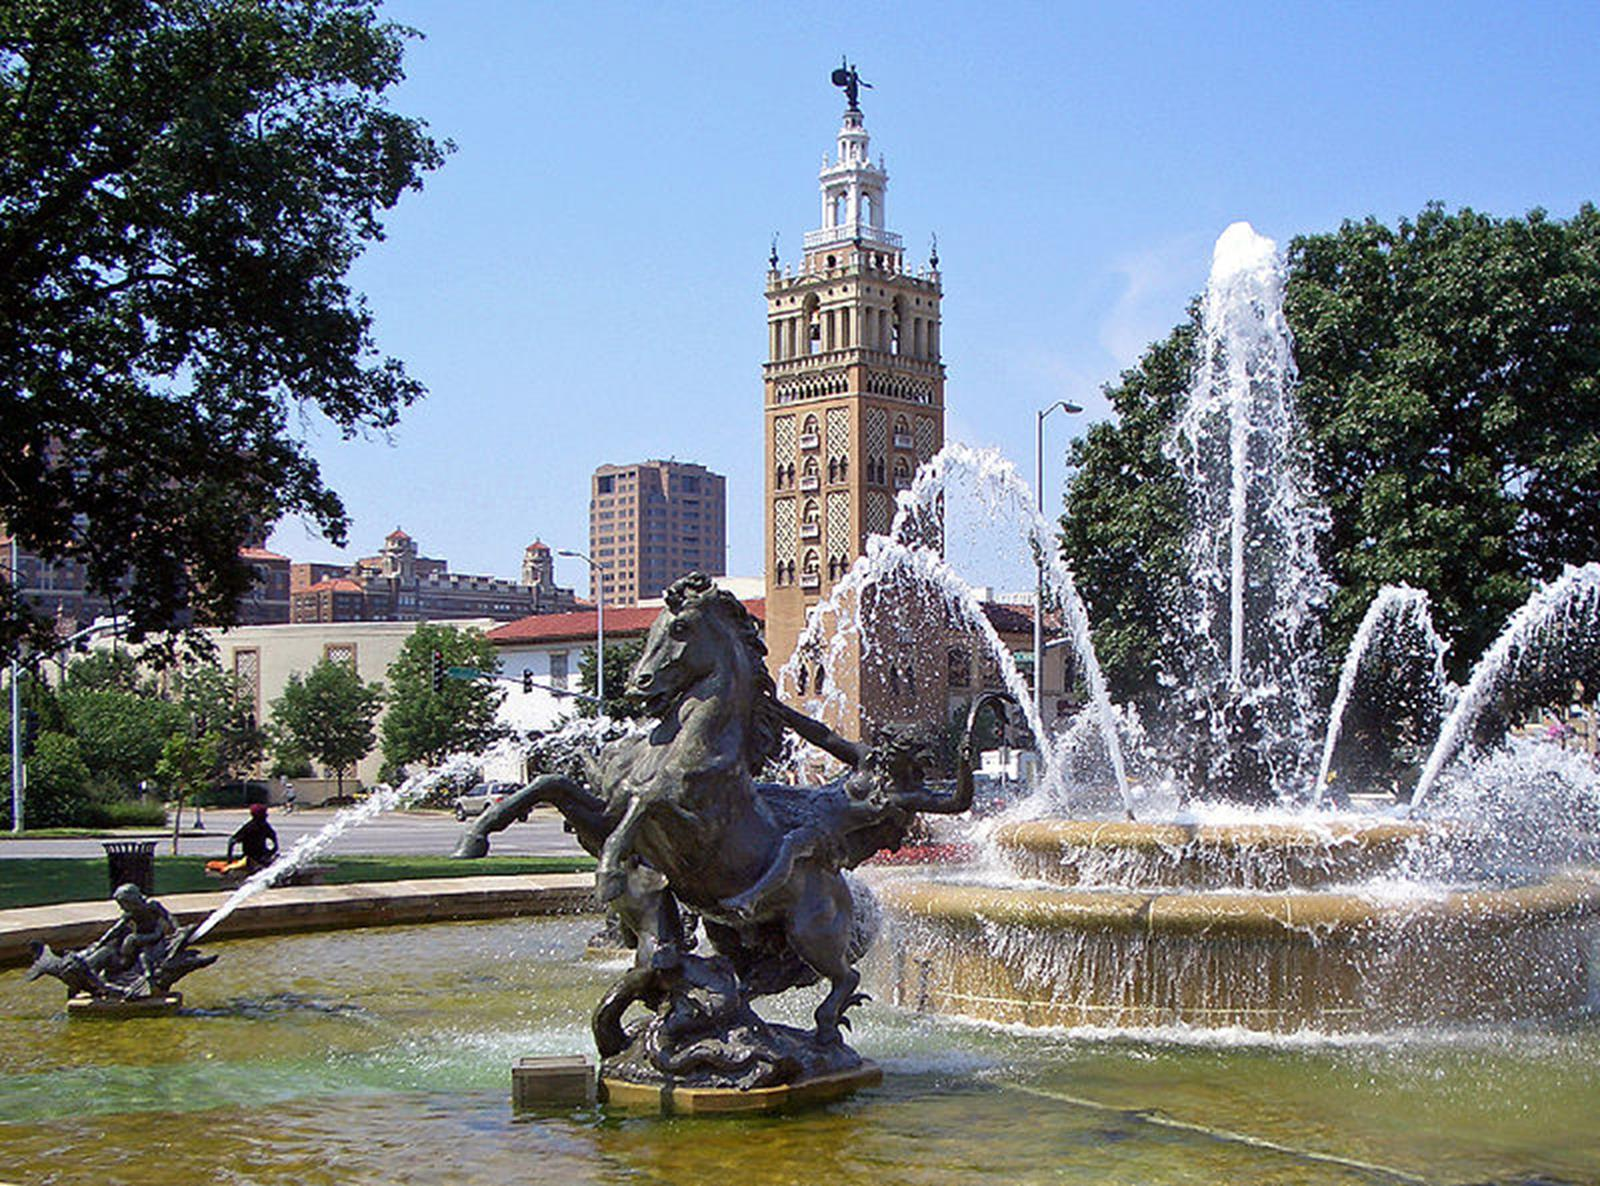 Kansas City, also known as the City of Fountains